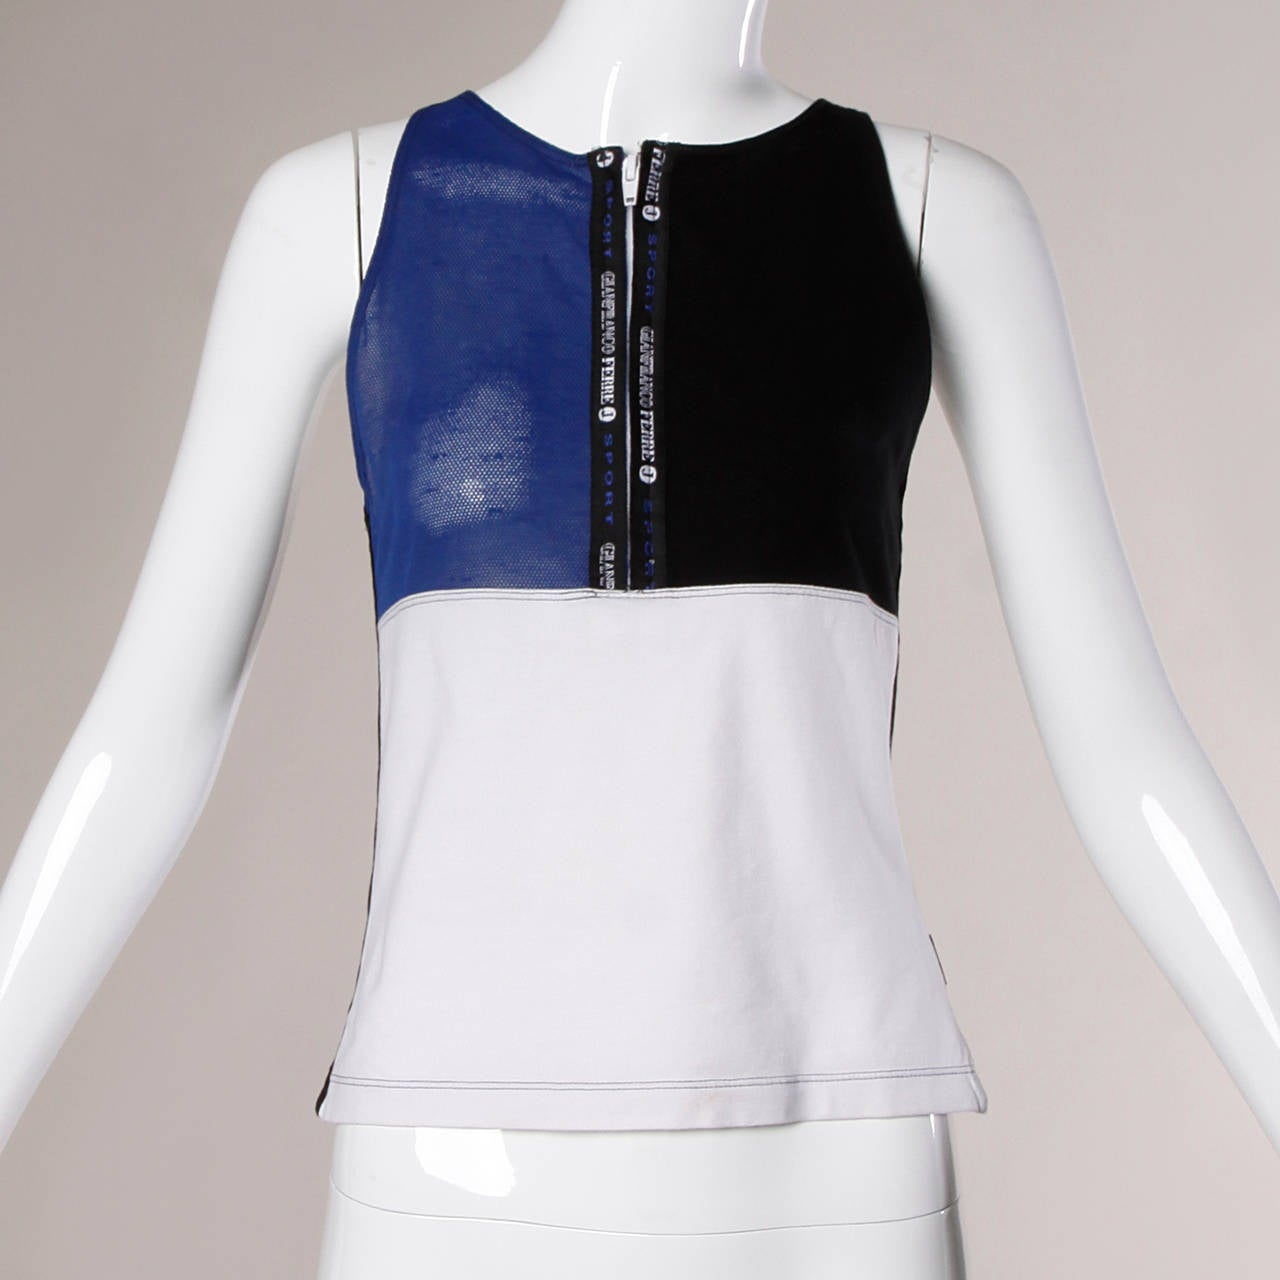 Gianfranco Ferre Vintage Sporty Color Block 2-Piece Skirt + Top Ensemble 7